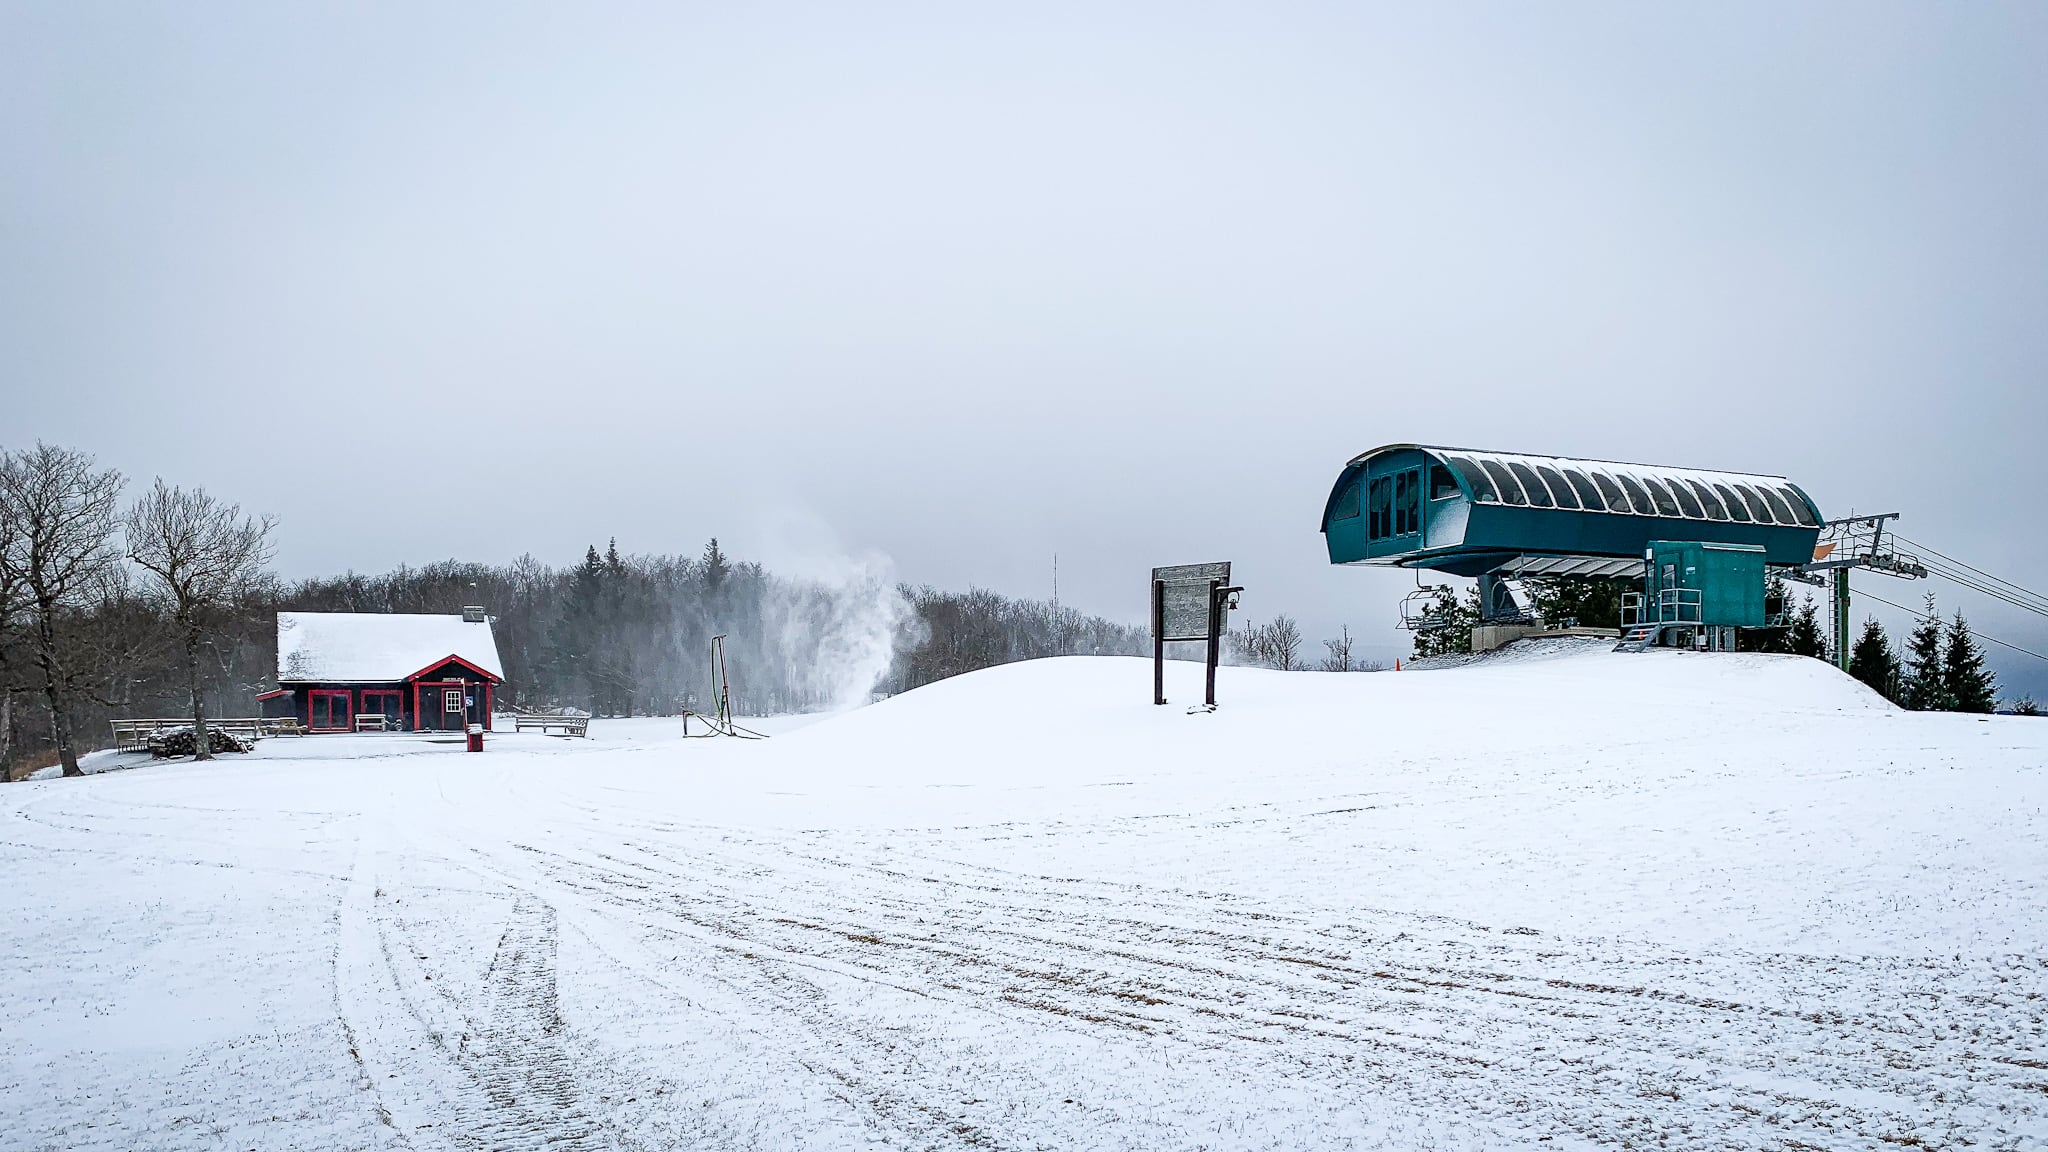 ski lifts and chalet